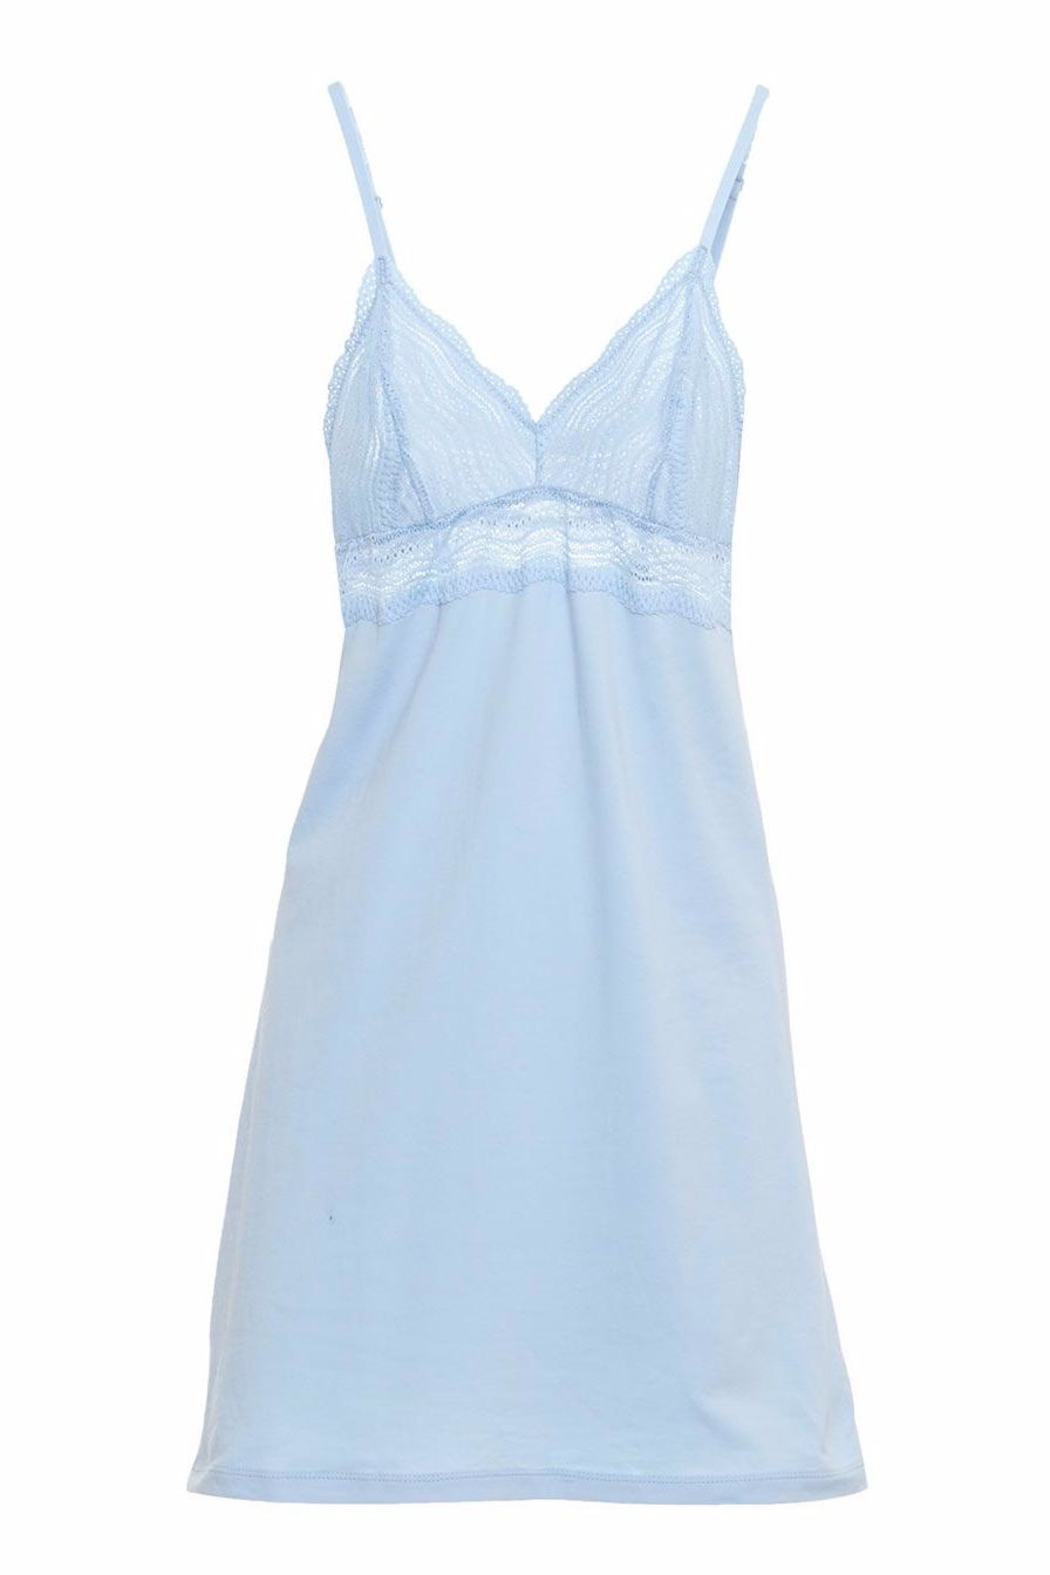 Cosabella Dolce Babydoll  Dress - Side Cropped Image